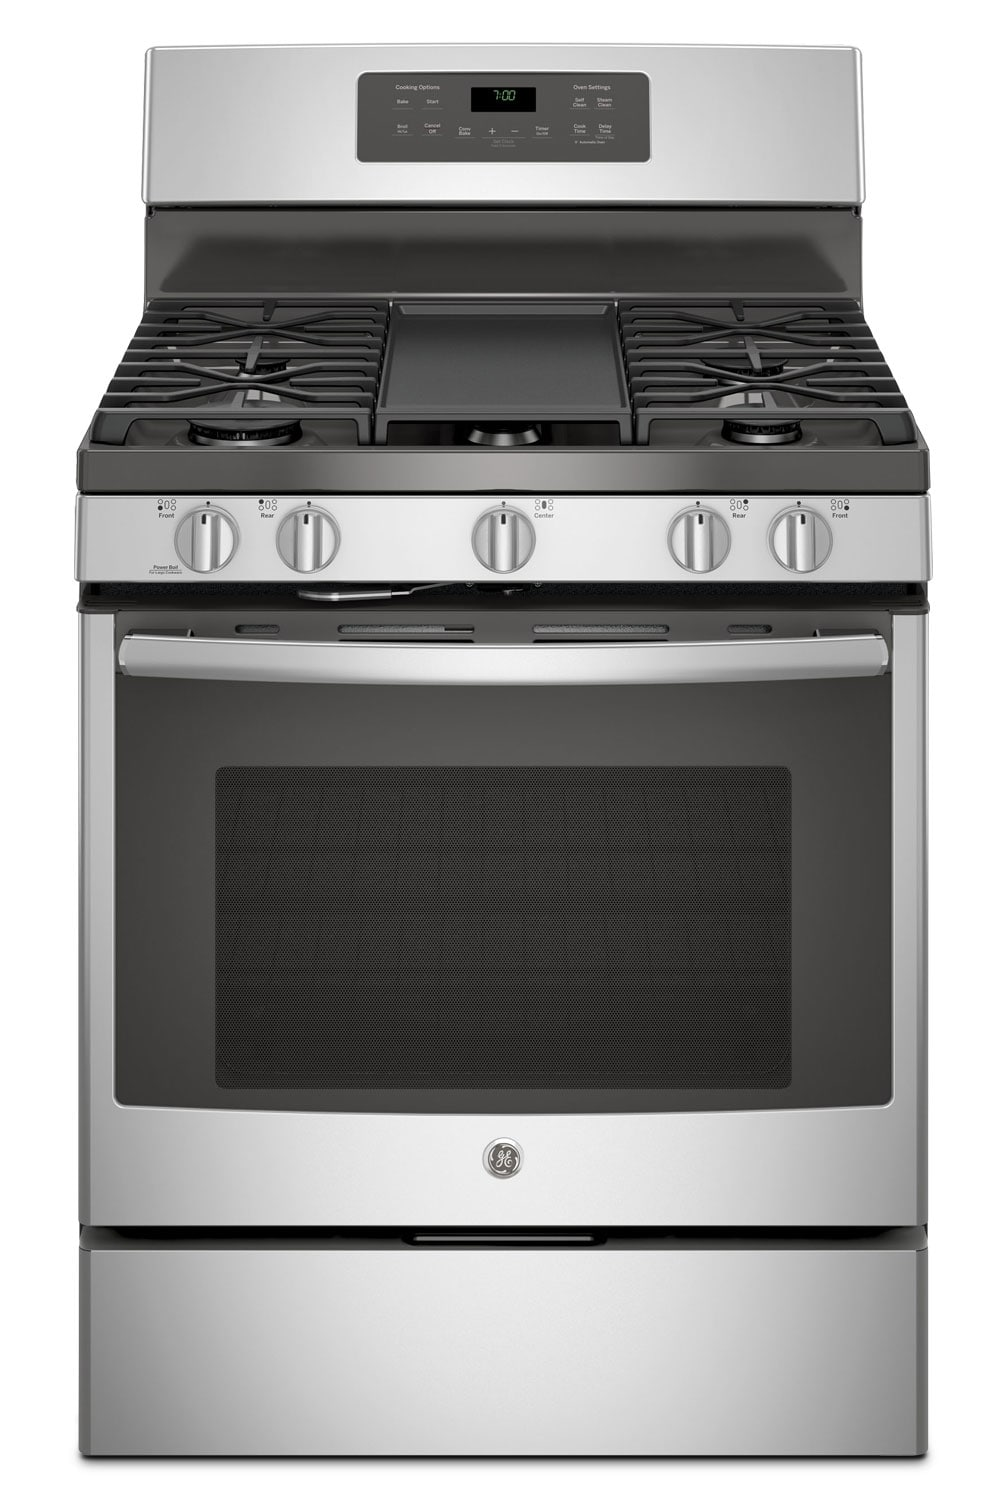 GE 5.0 Cu. Ft. Freestanding Convection Gas Range with Self Clean - JCGB700SEJSS